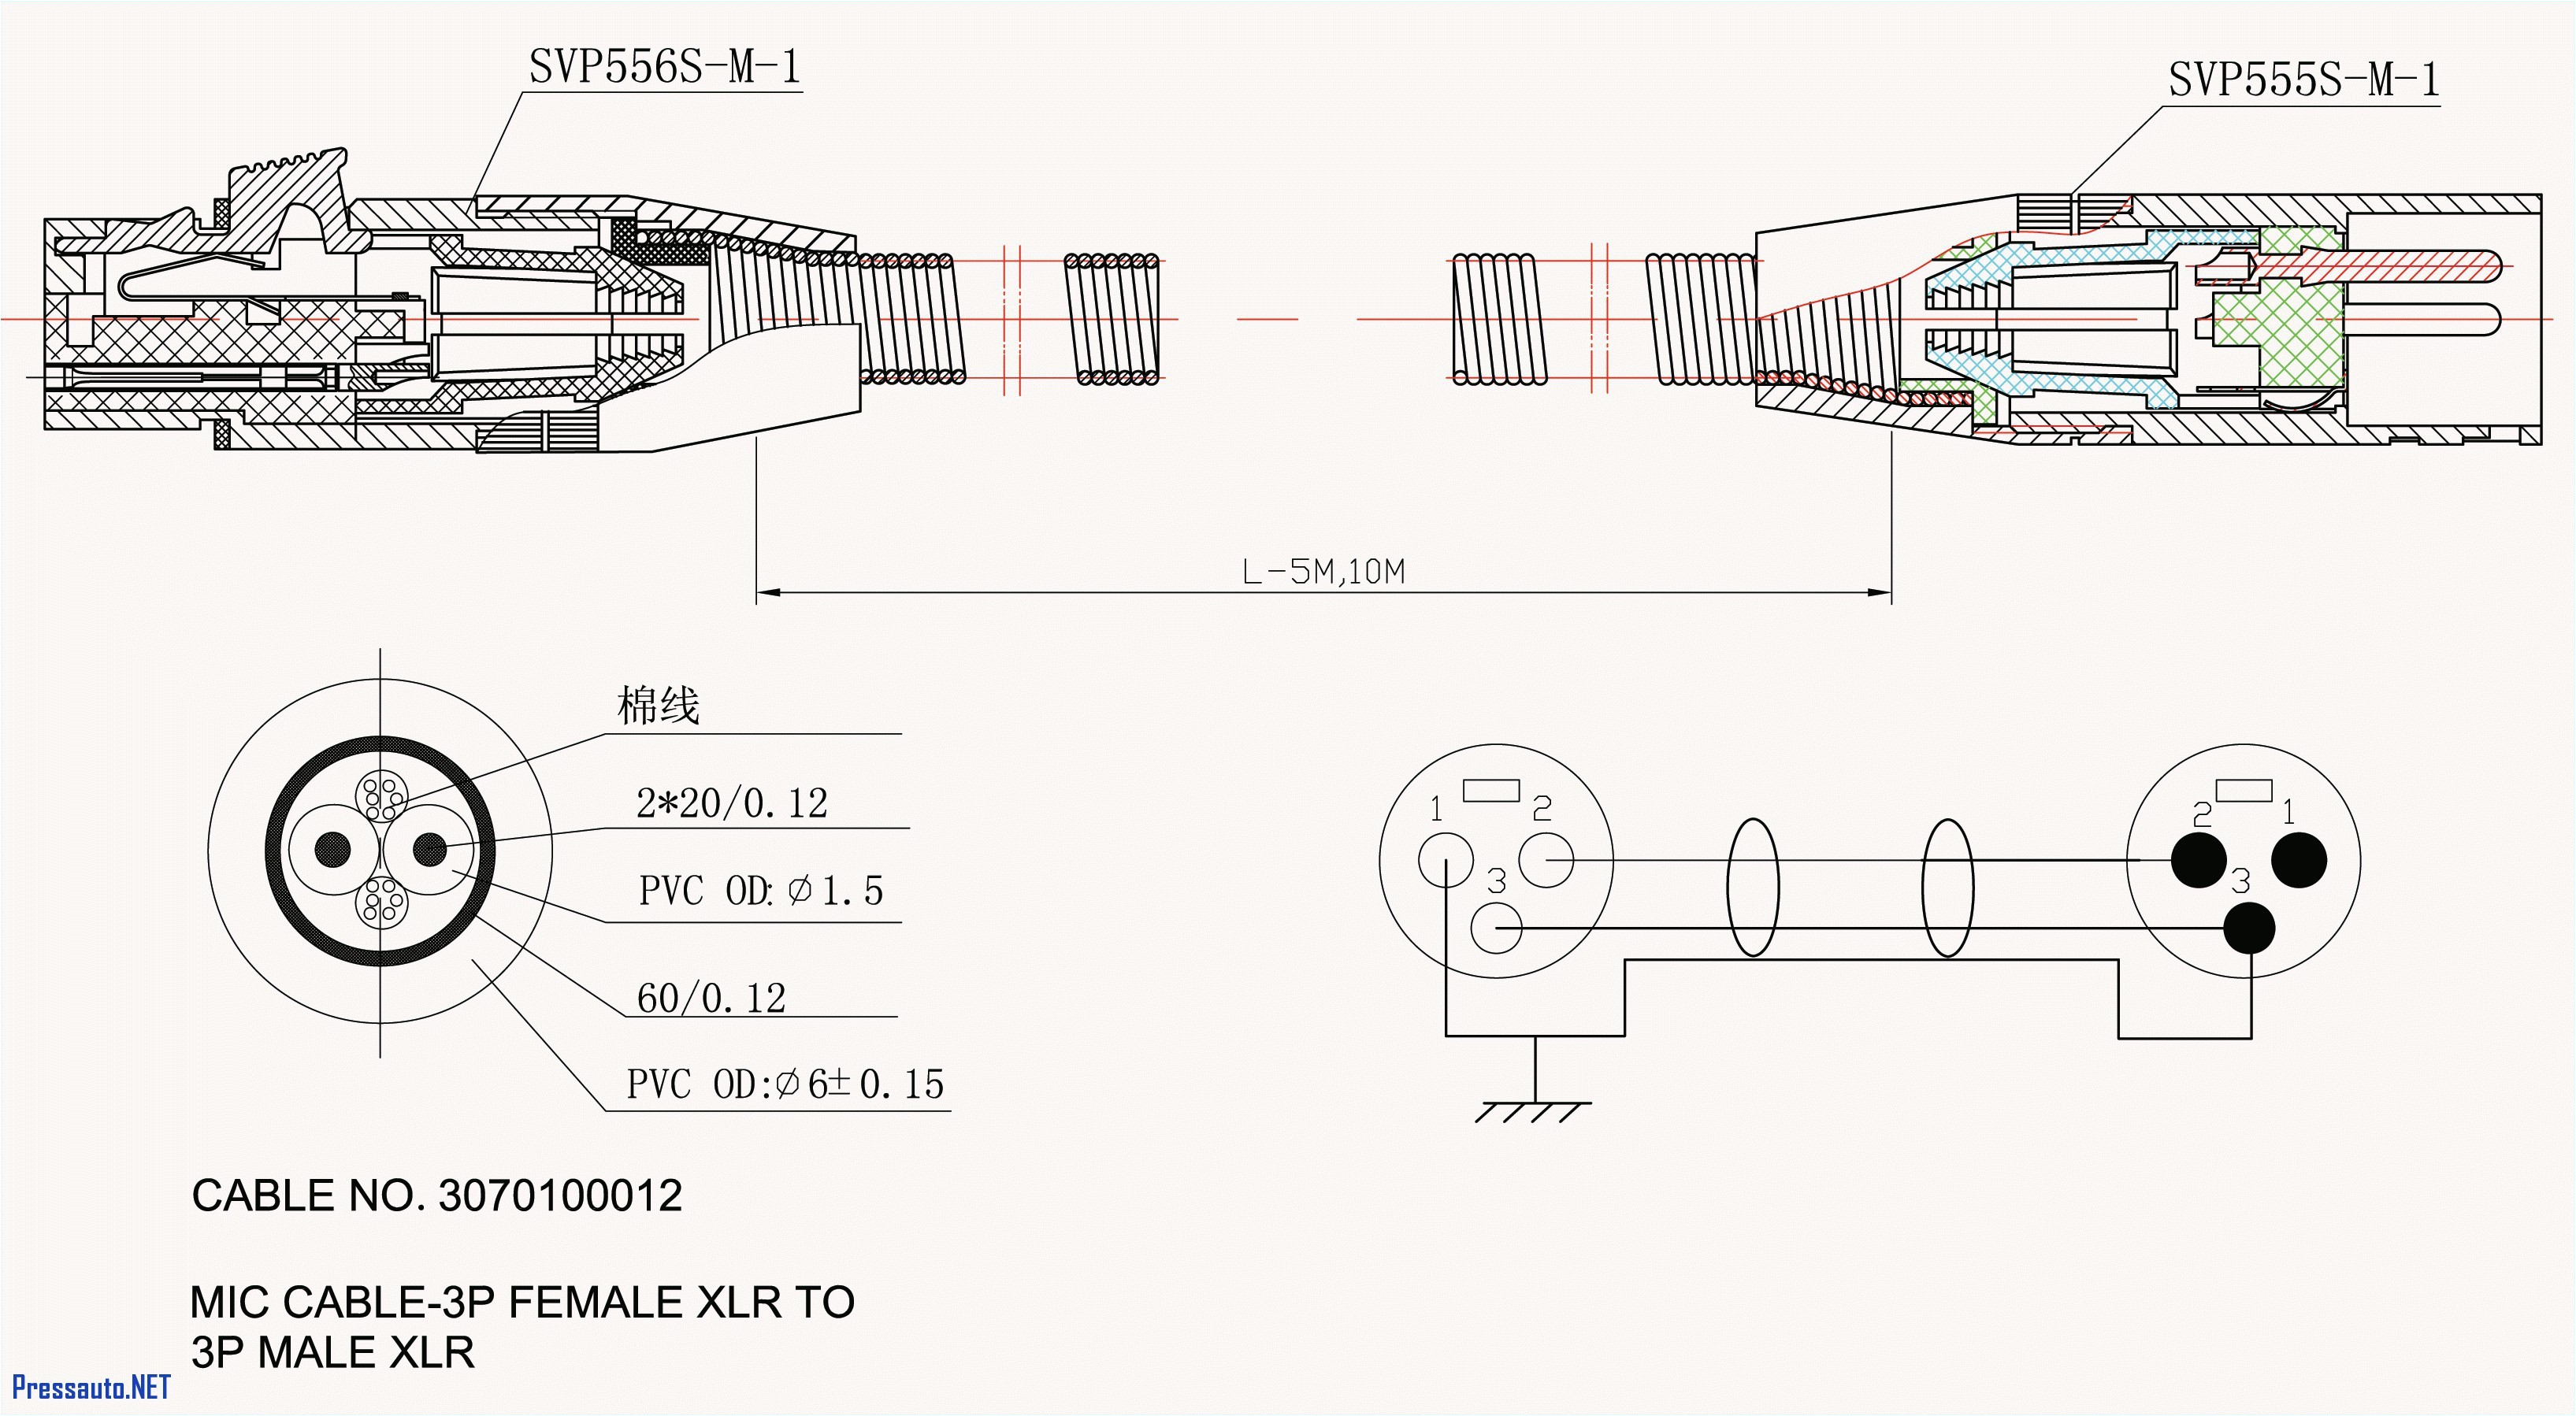 Stove Plug Wiring Diagram Defy Stove Wiring Diagram Inspirational Stove Hot Plate Wiring